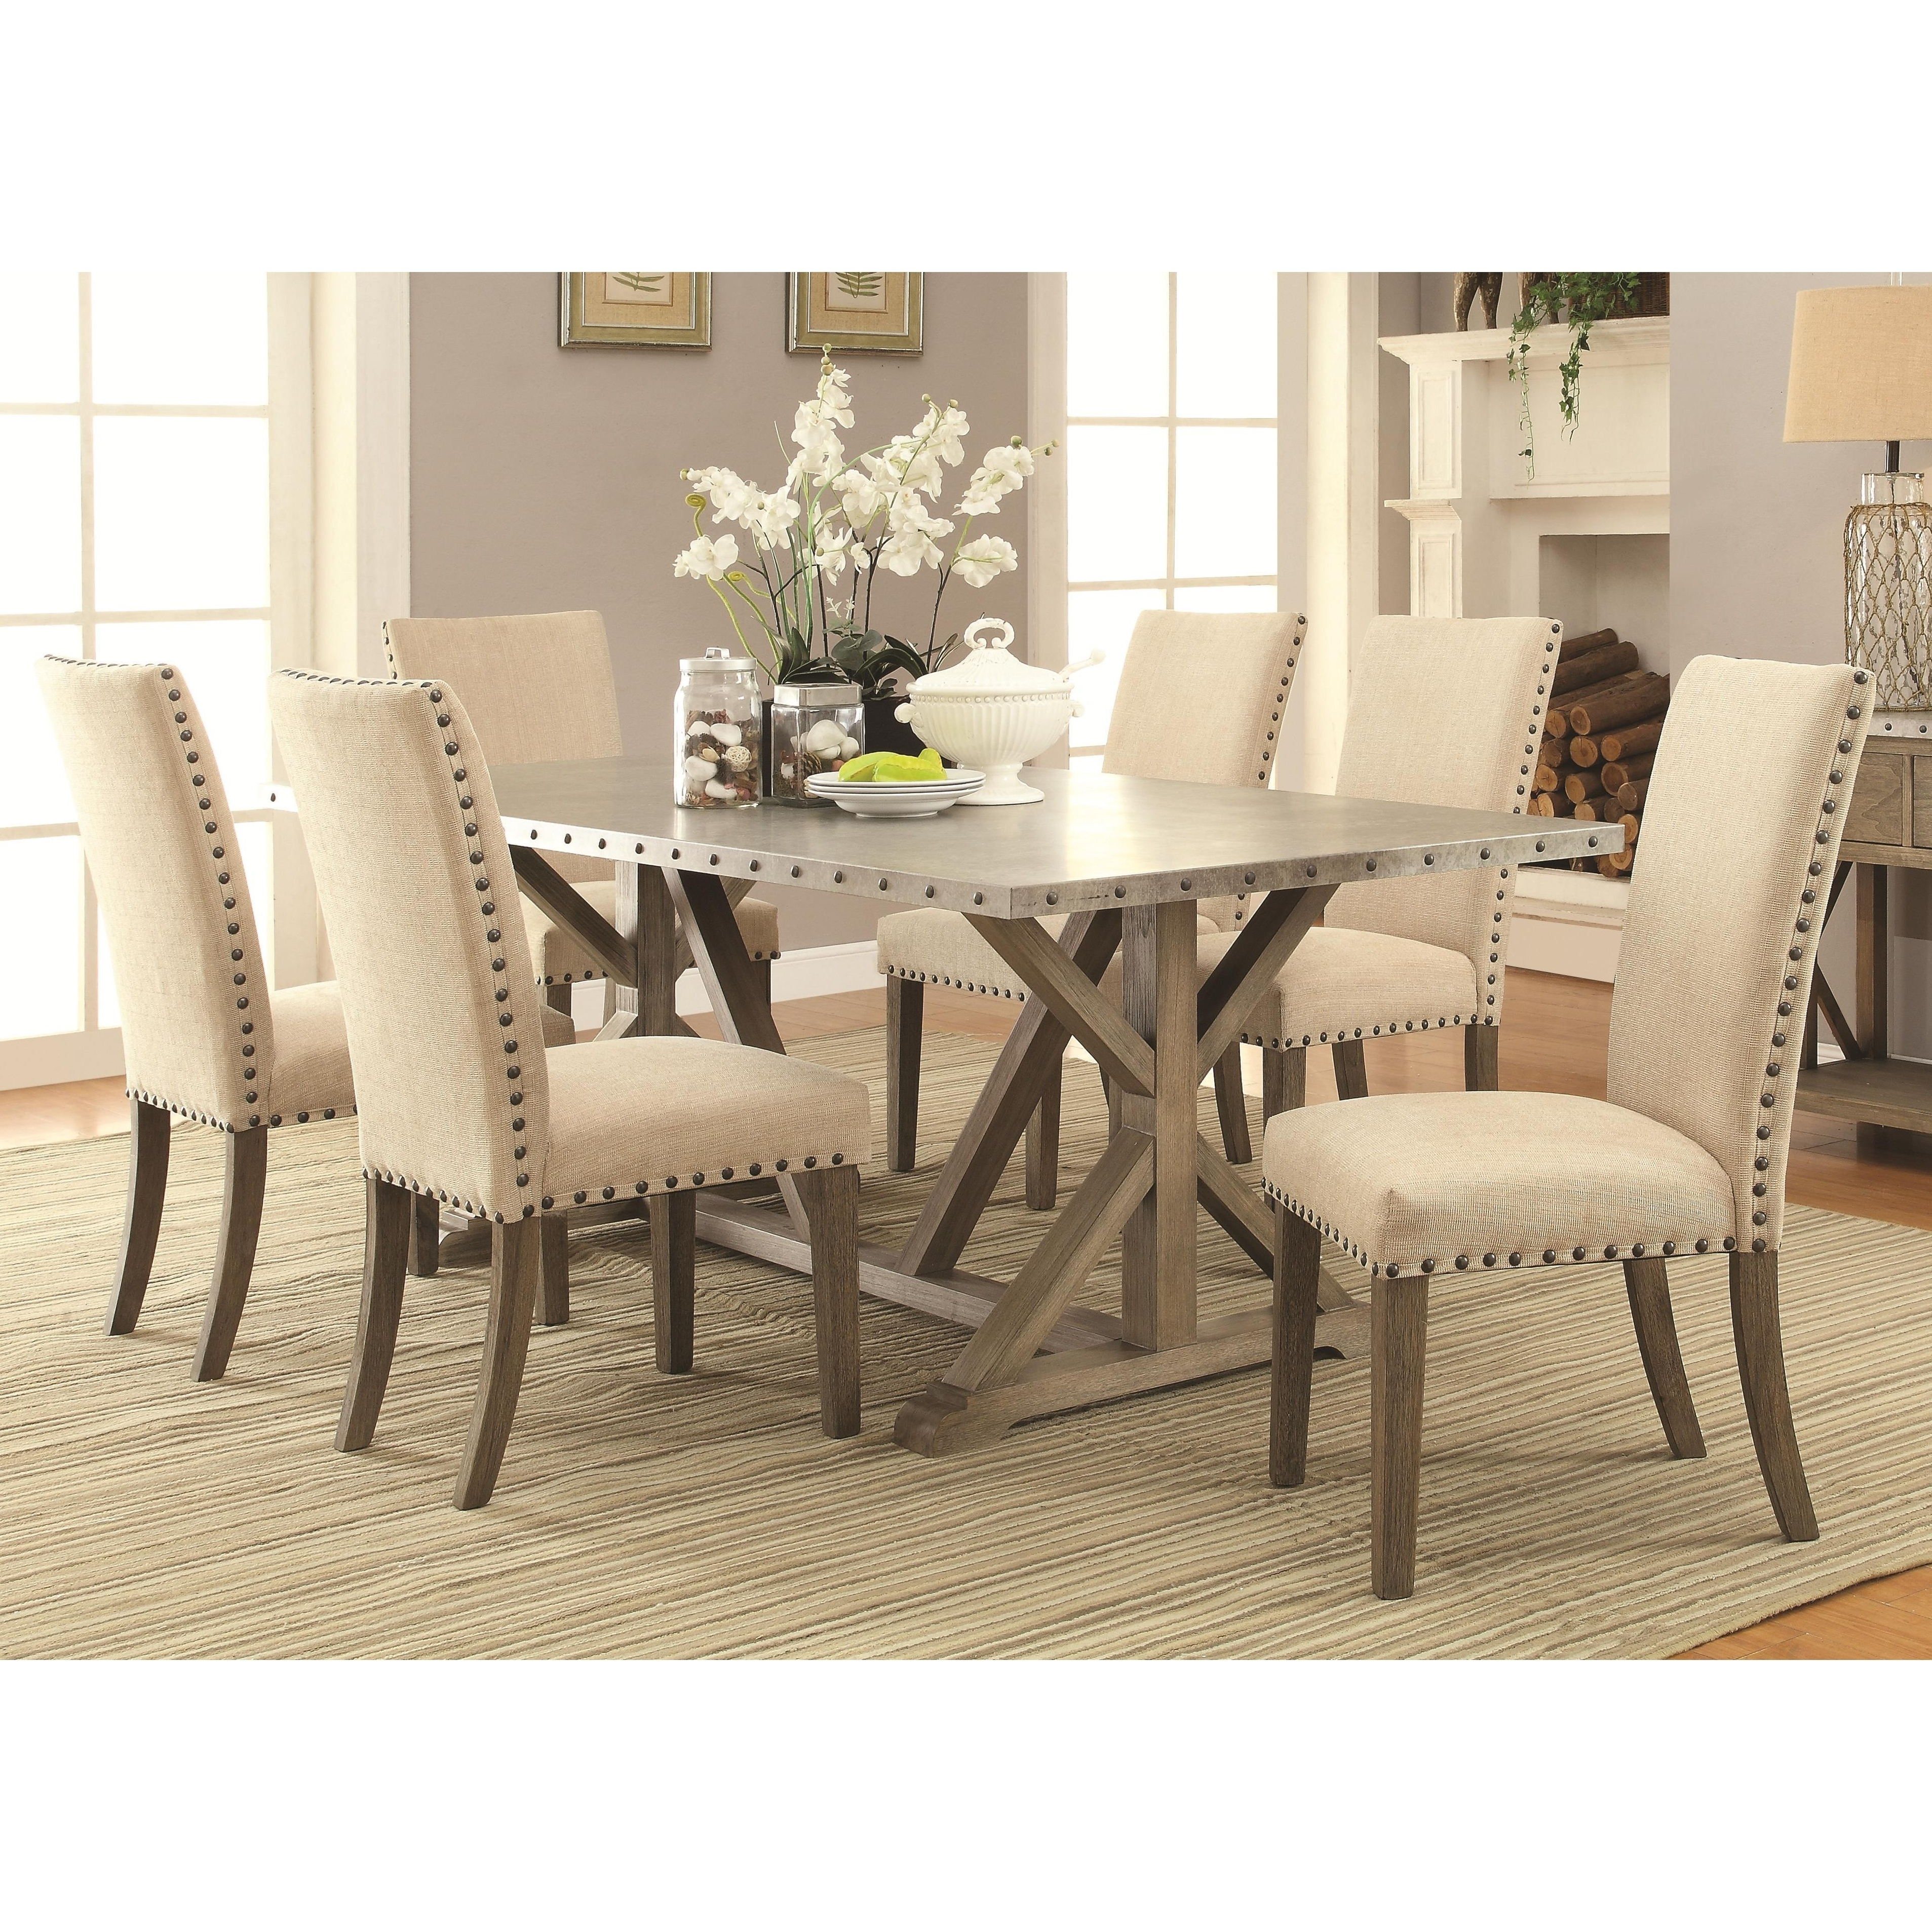 2018 Cheap Dining Tables Regarding Buy Cheap Dining Table Set Inspirational Chair Dark Wood Dining (View 2 of 25)